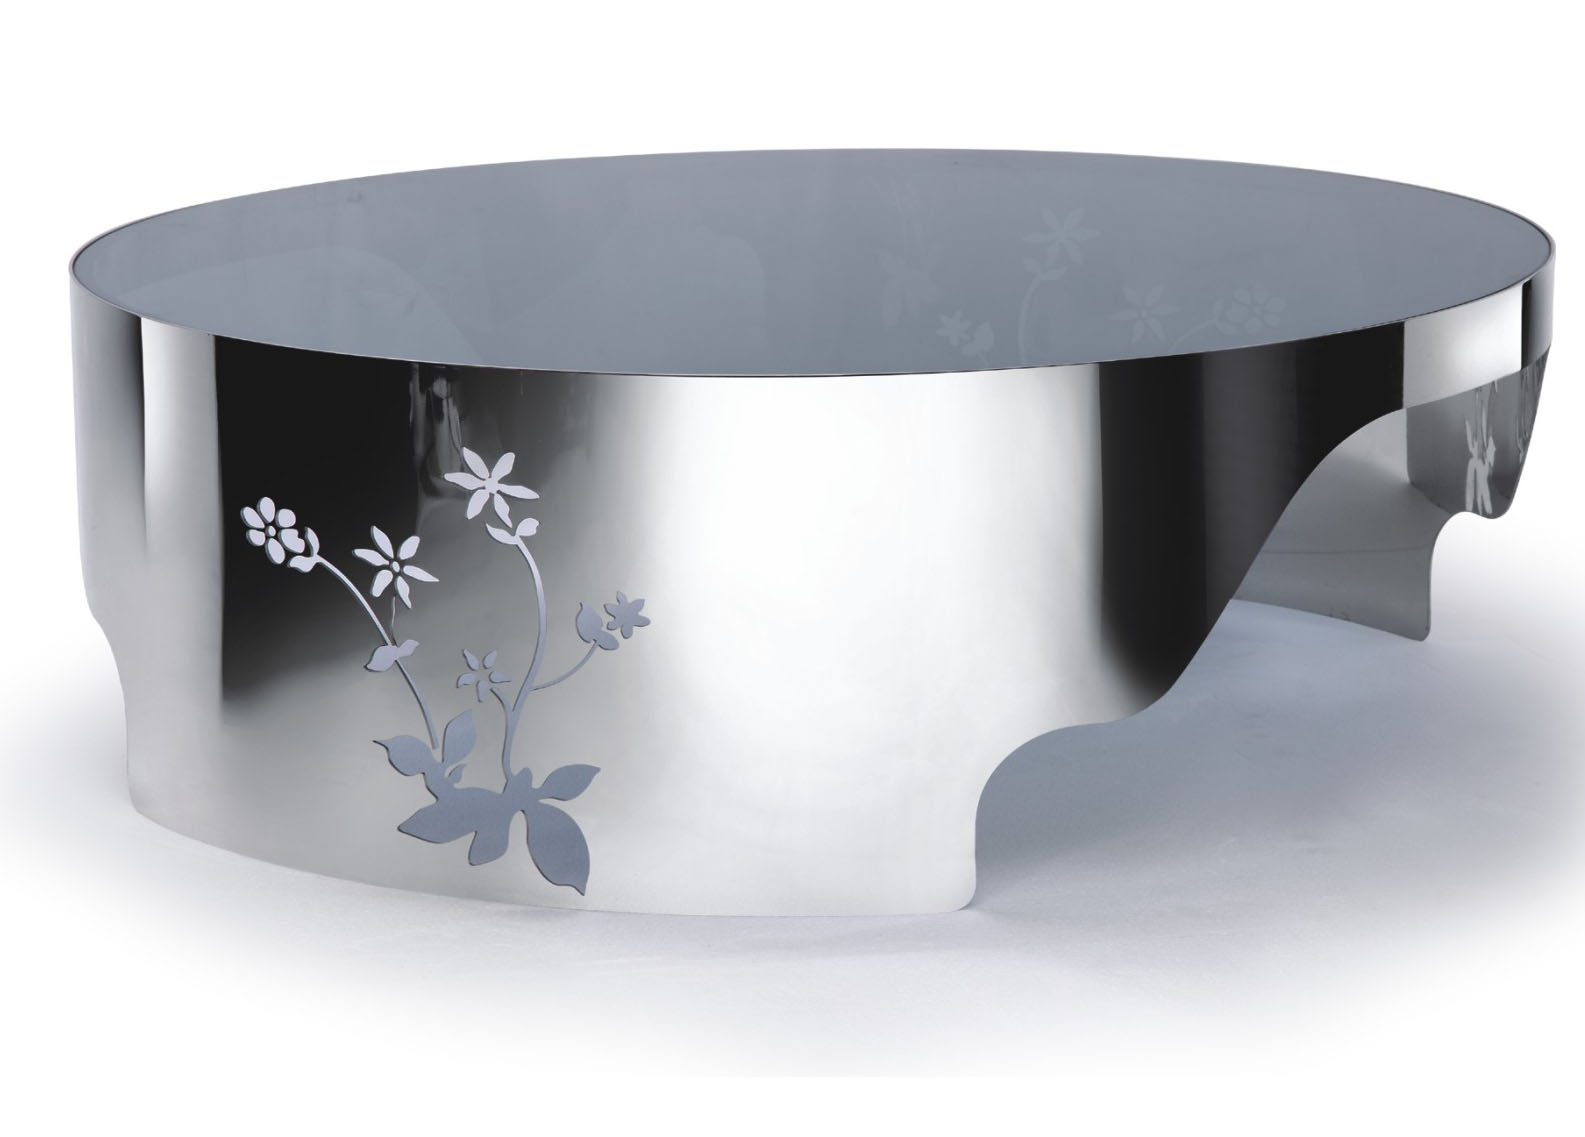 Designer Large Round Coffee Table Glass Top Stainless Steel 119 EBay